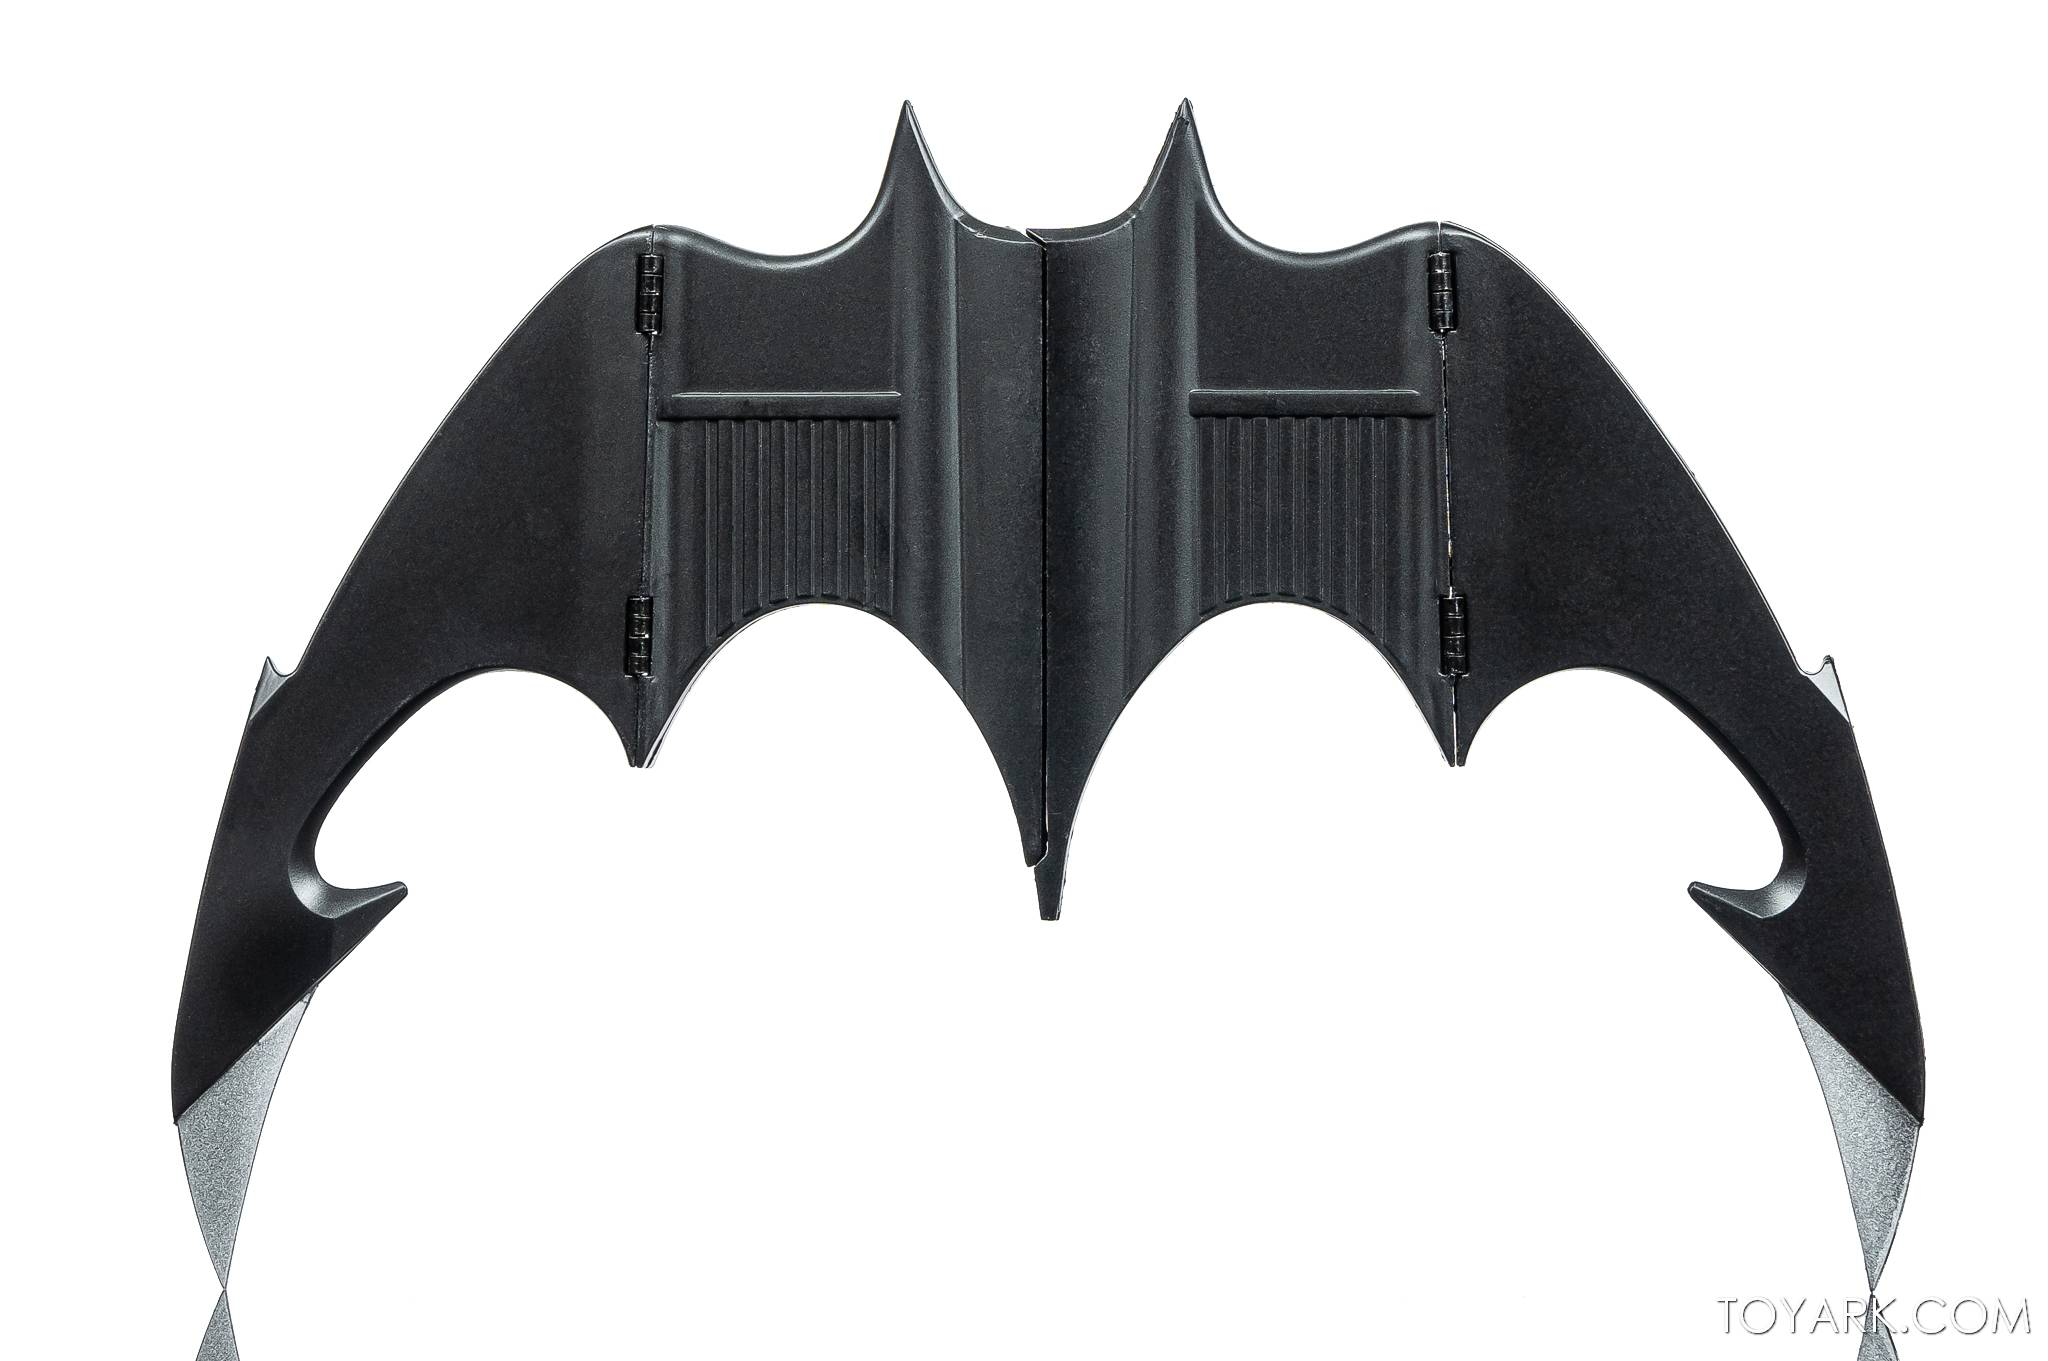 https://news.toyark.com/wp-content/uploads/sites/4/2021/02/NECA-Batarang-007.jpg